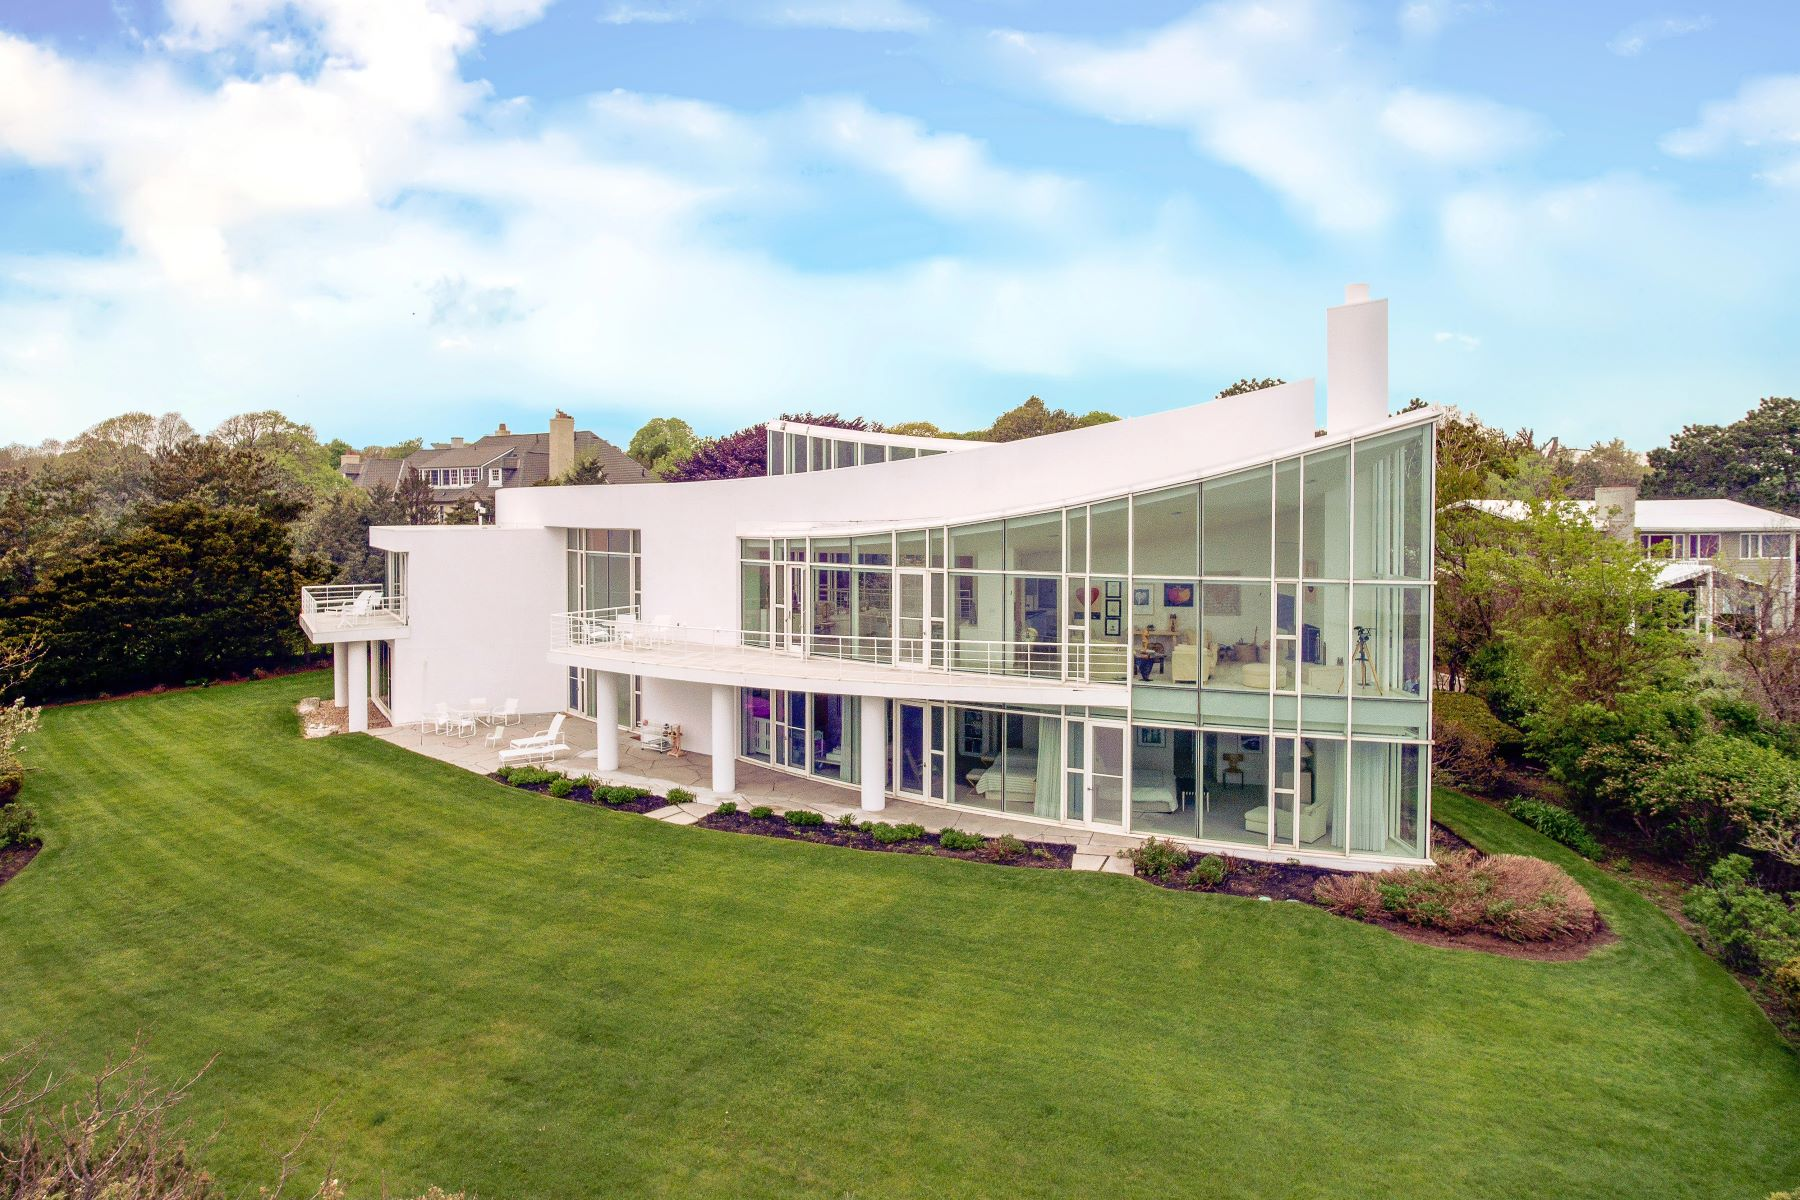 Single Family Homes for Sale at Extraordinary Ocean Front Contemporary Home 45 Little's Point Swampscott, Massachusetts 01907 United States